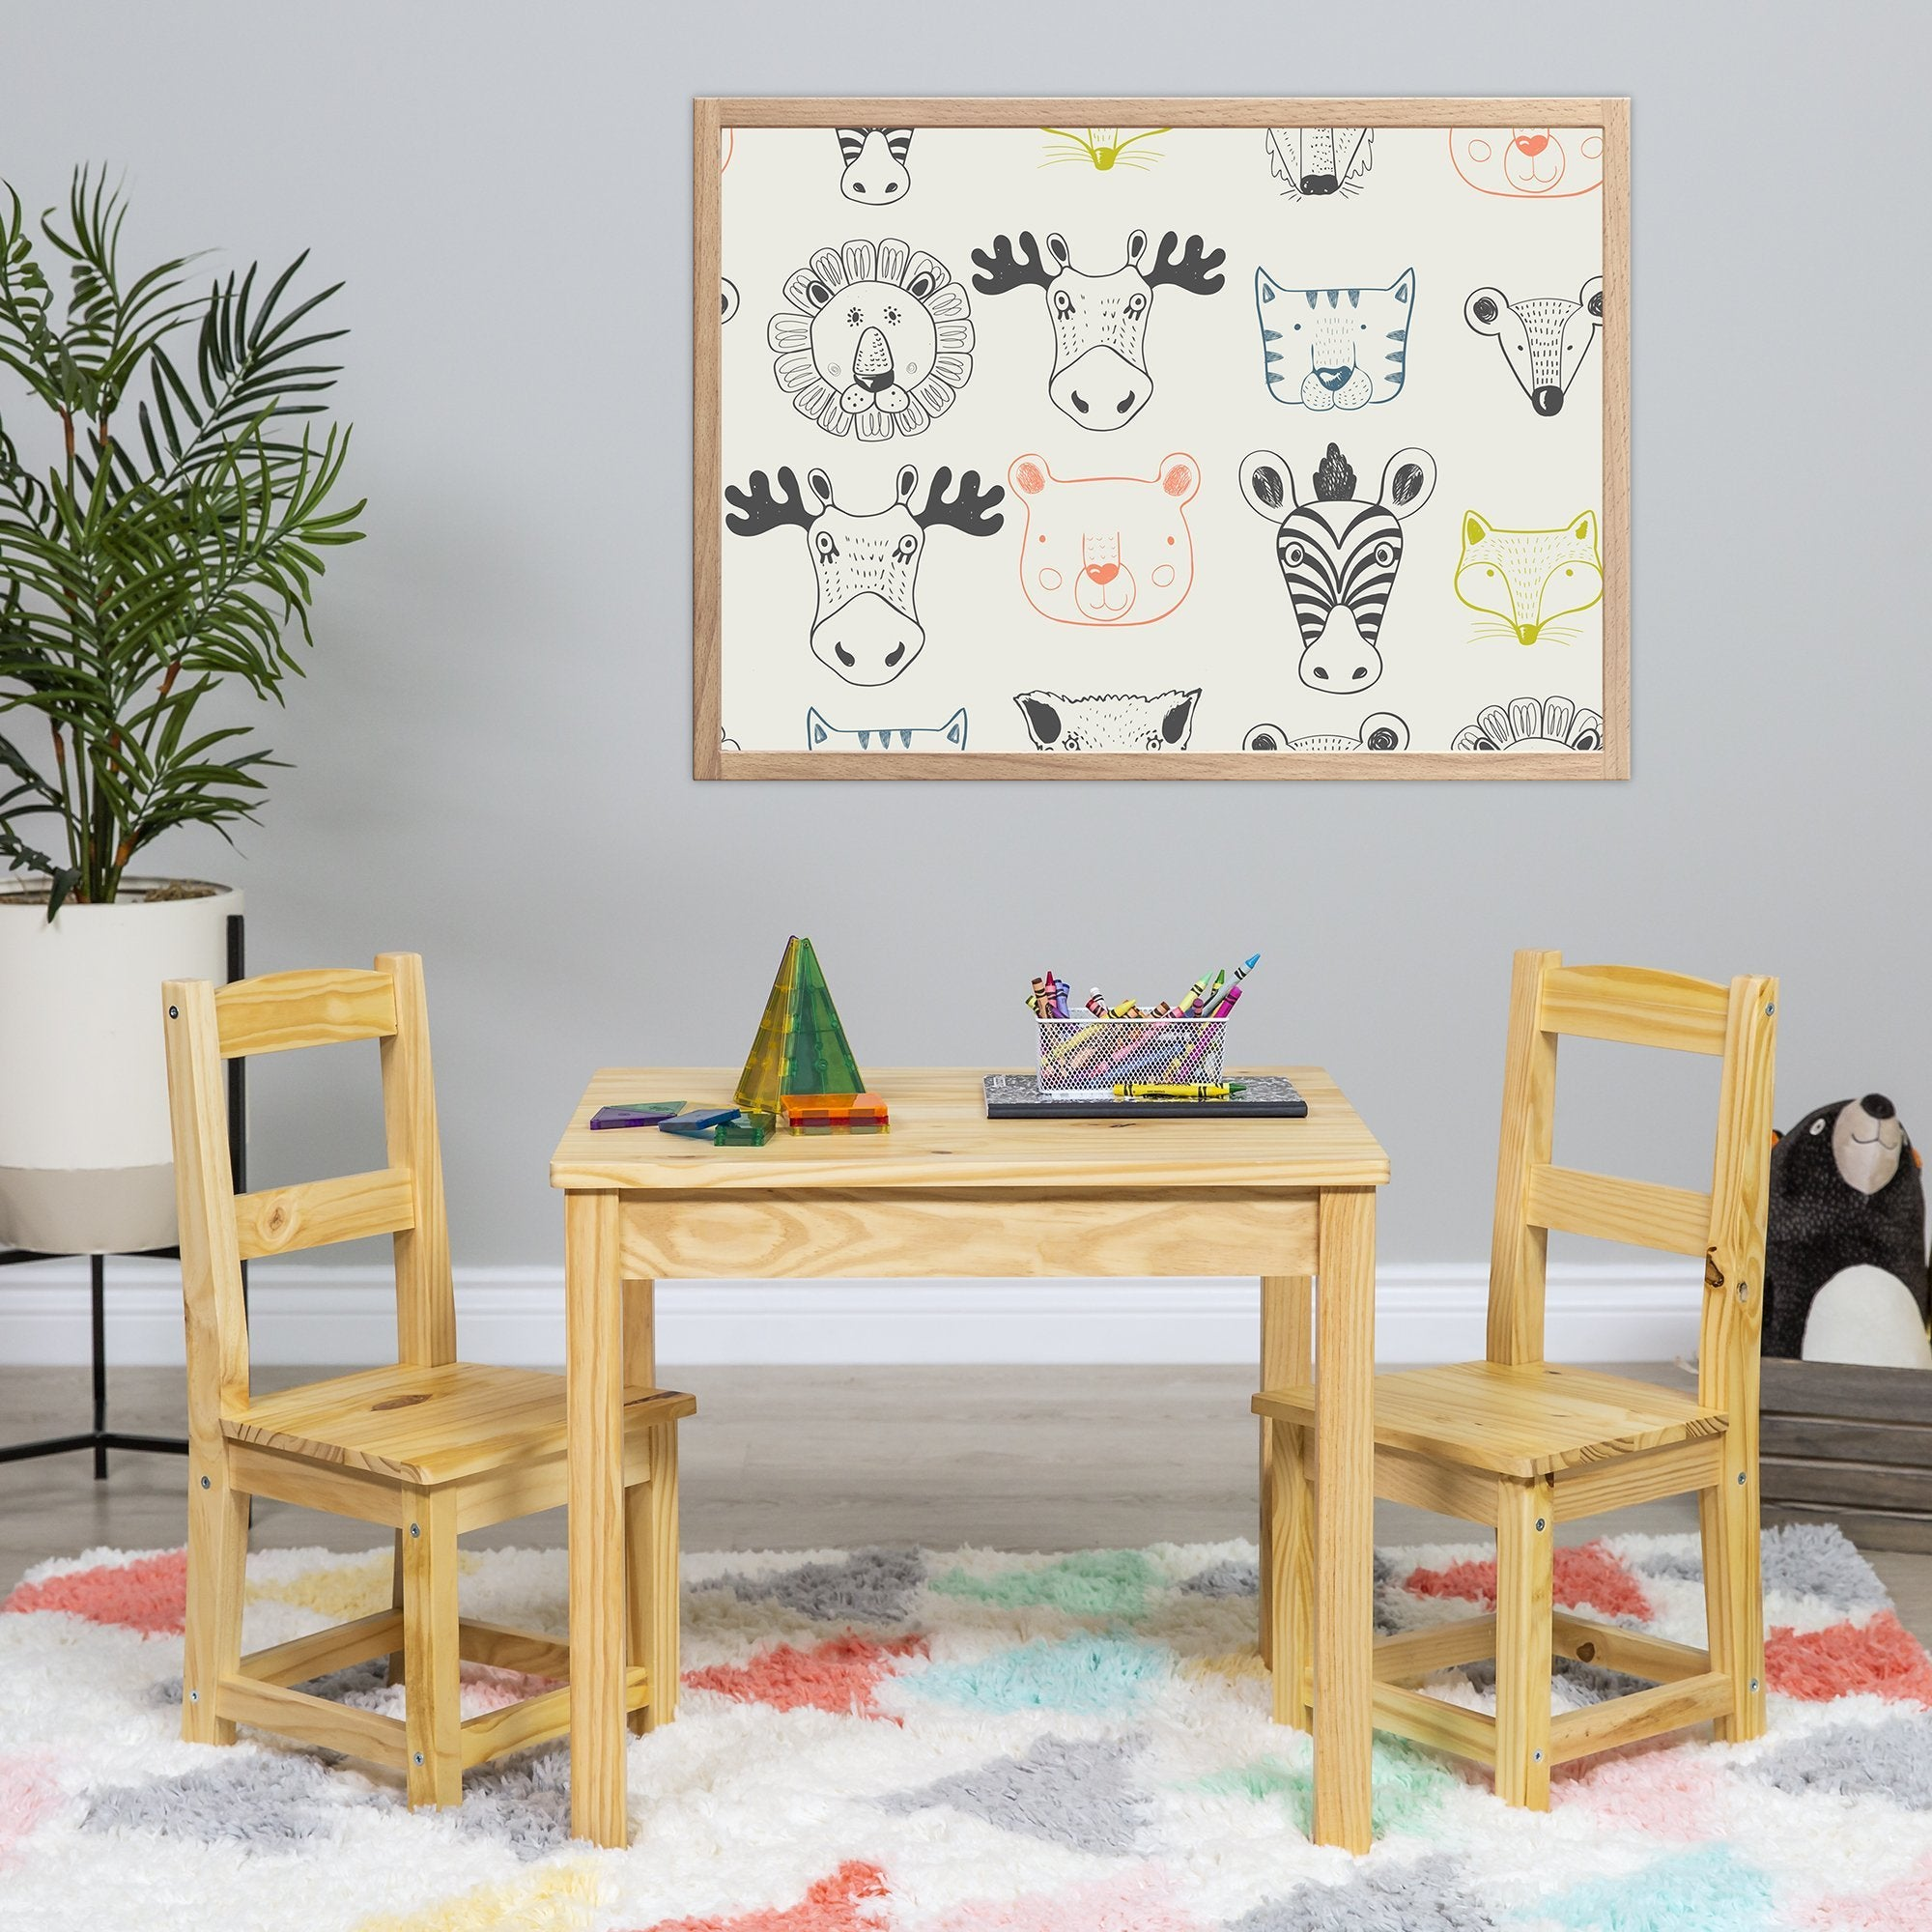 3-Piece Kids Wooden Activity Table Furniture Set w/ 2 Chairs